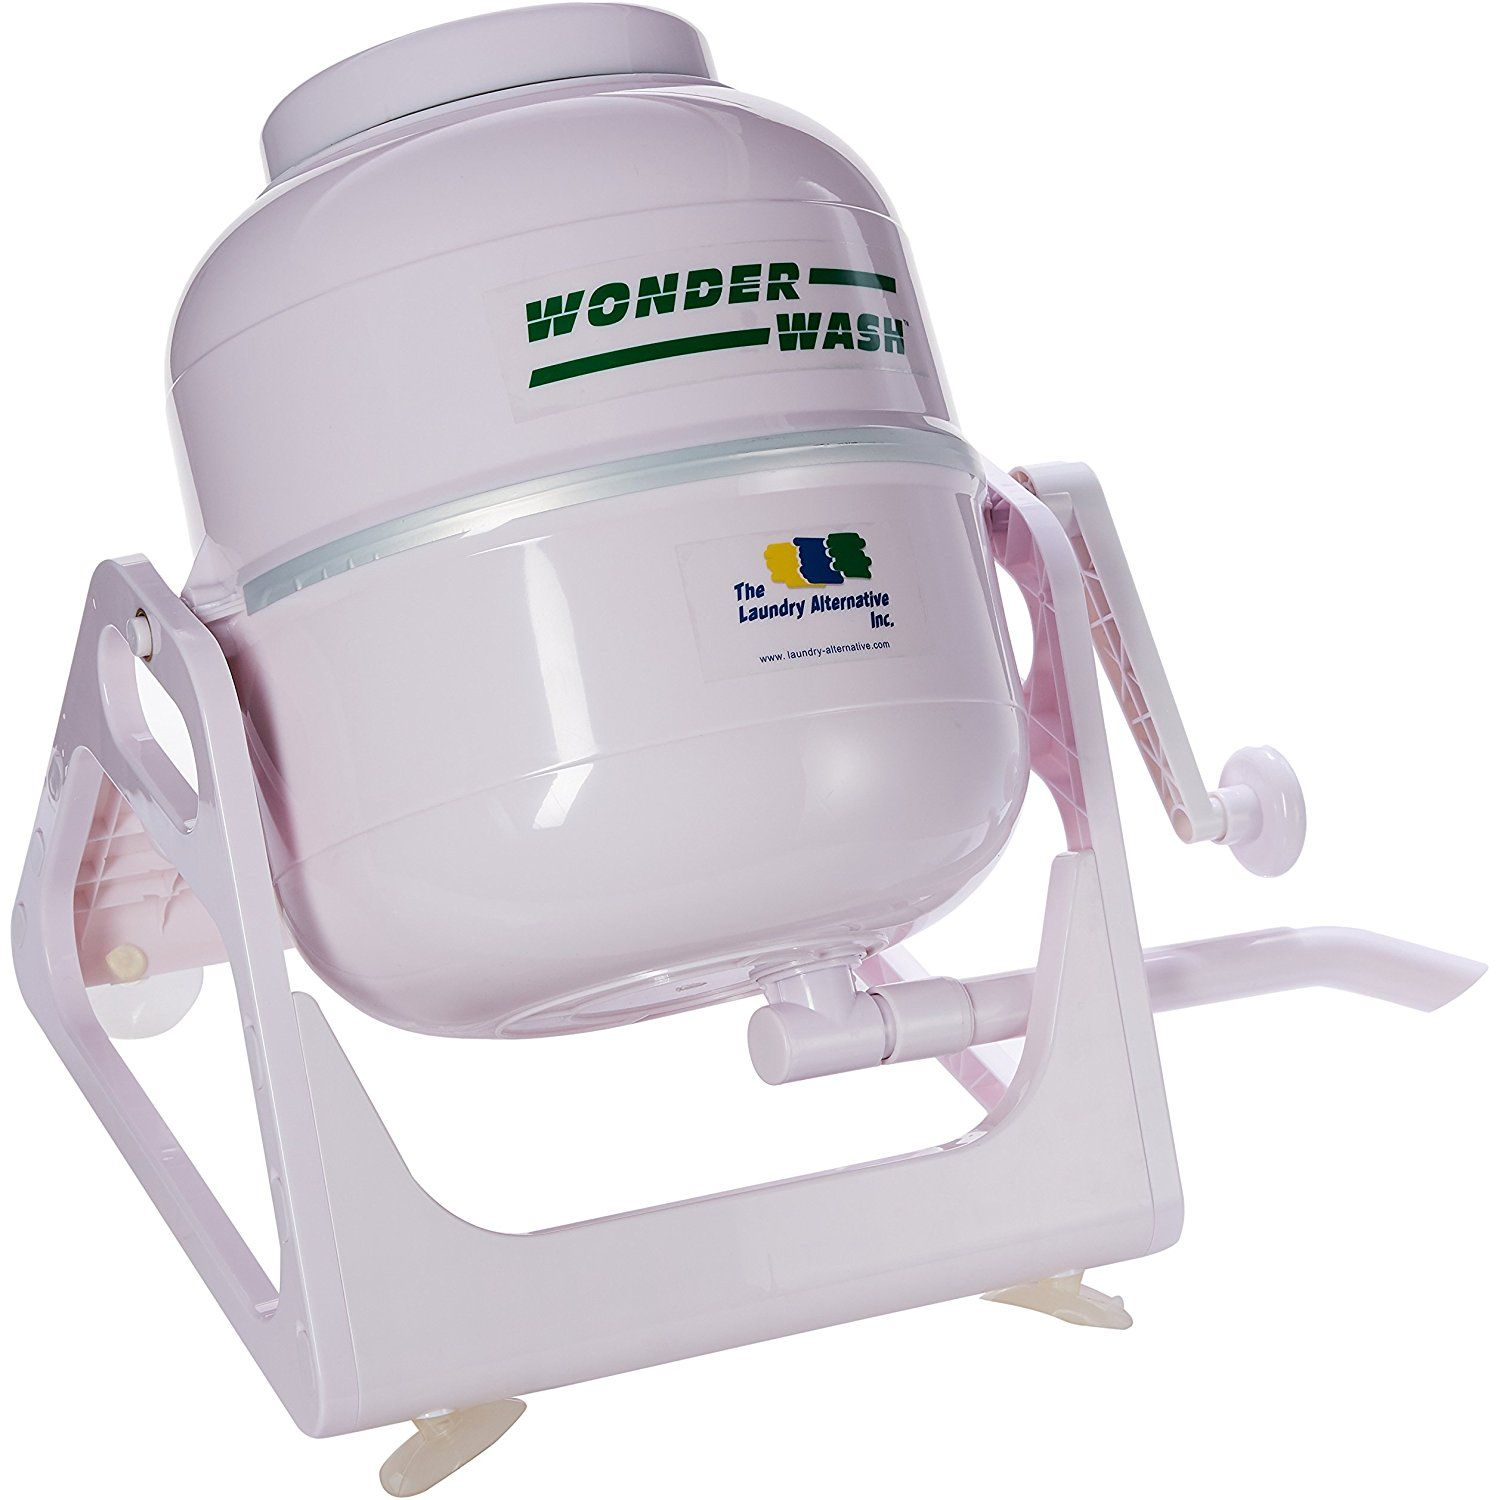 The Laundry Alternative Wonderwash Non Electric Portable Washing Machine